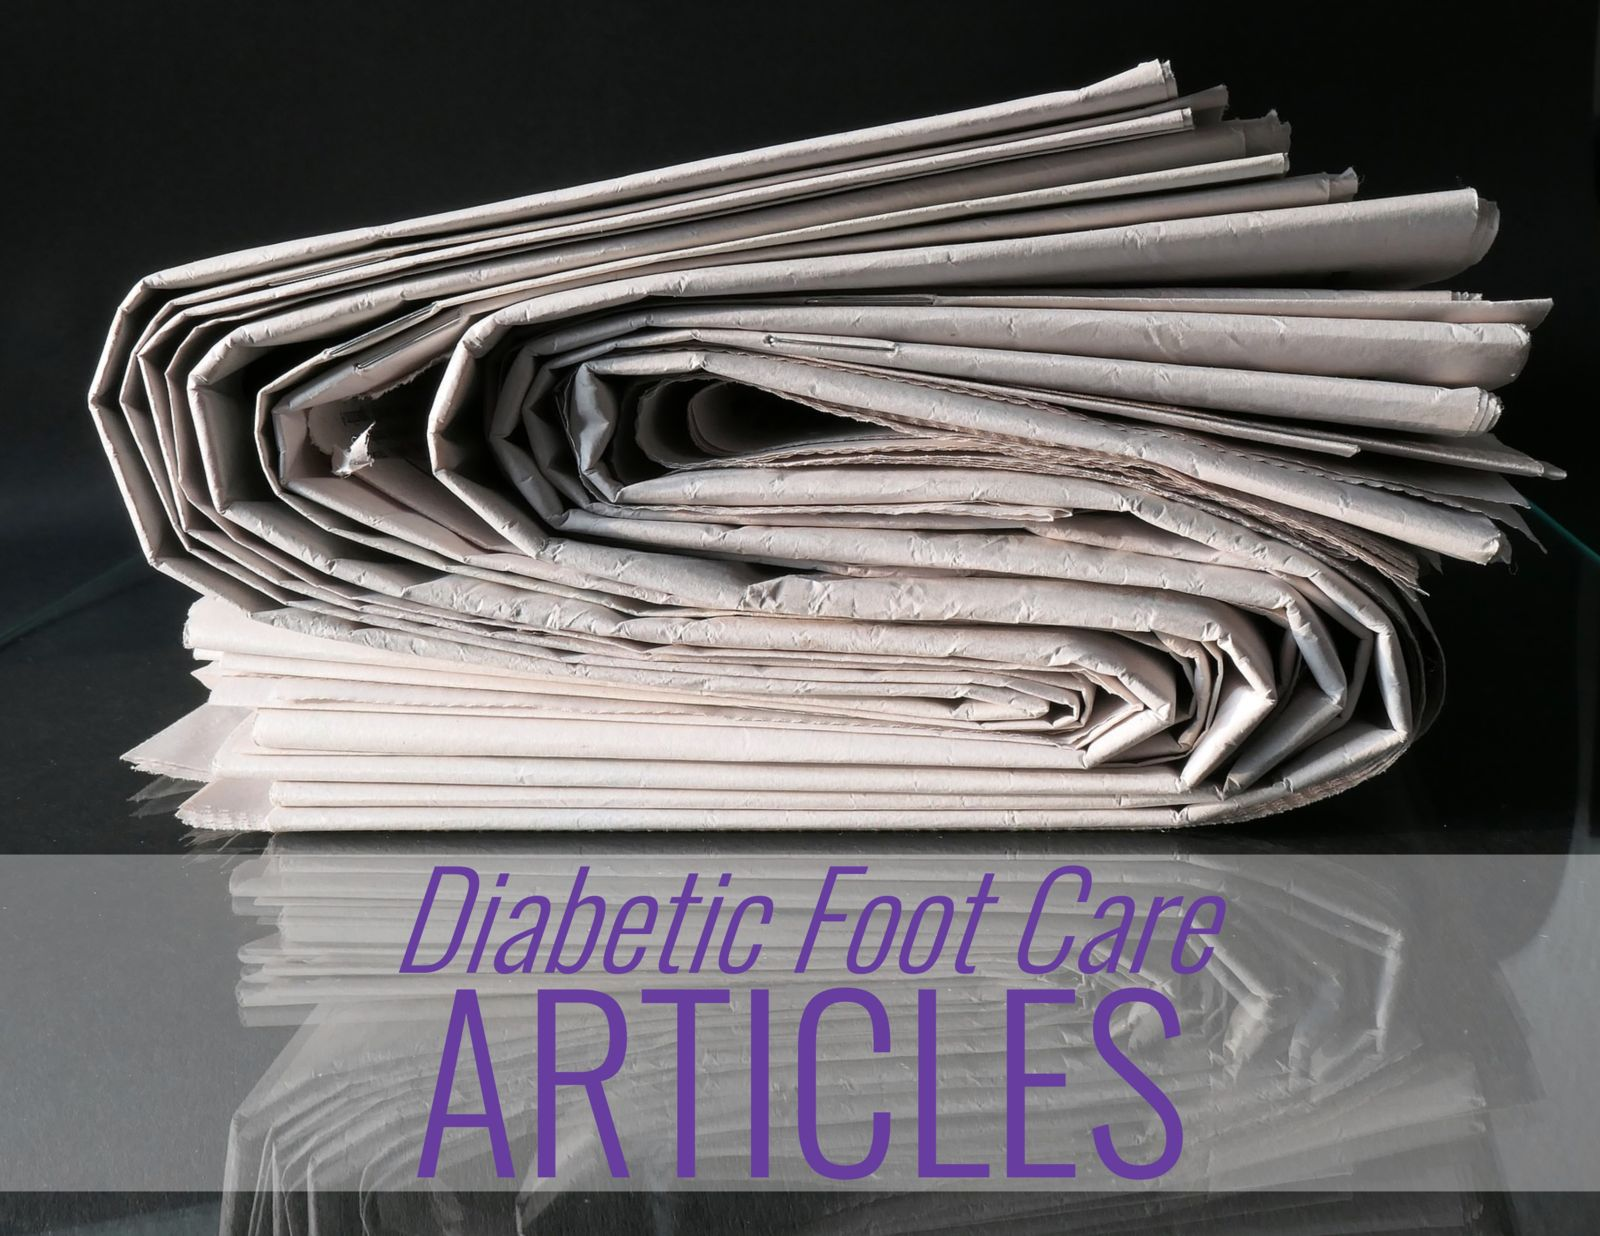 newspapers and the words: Diabetic Foot Care Articles